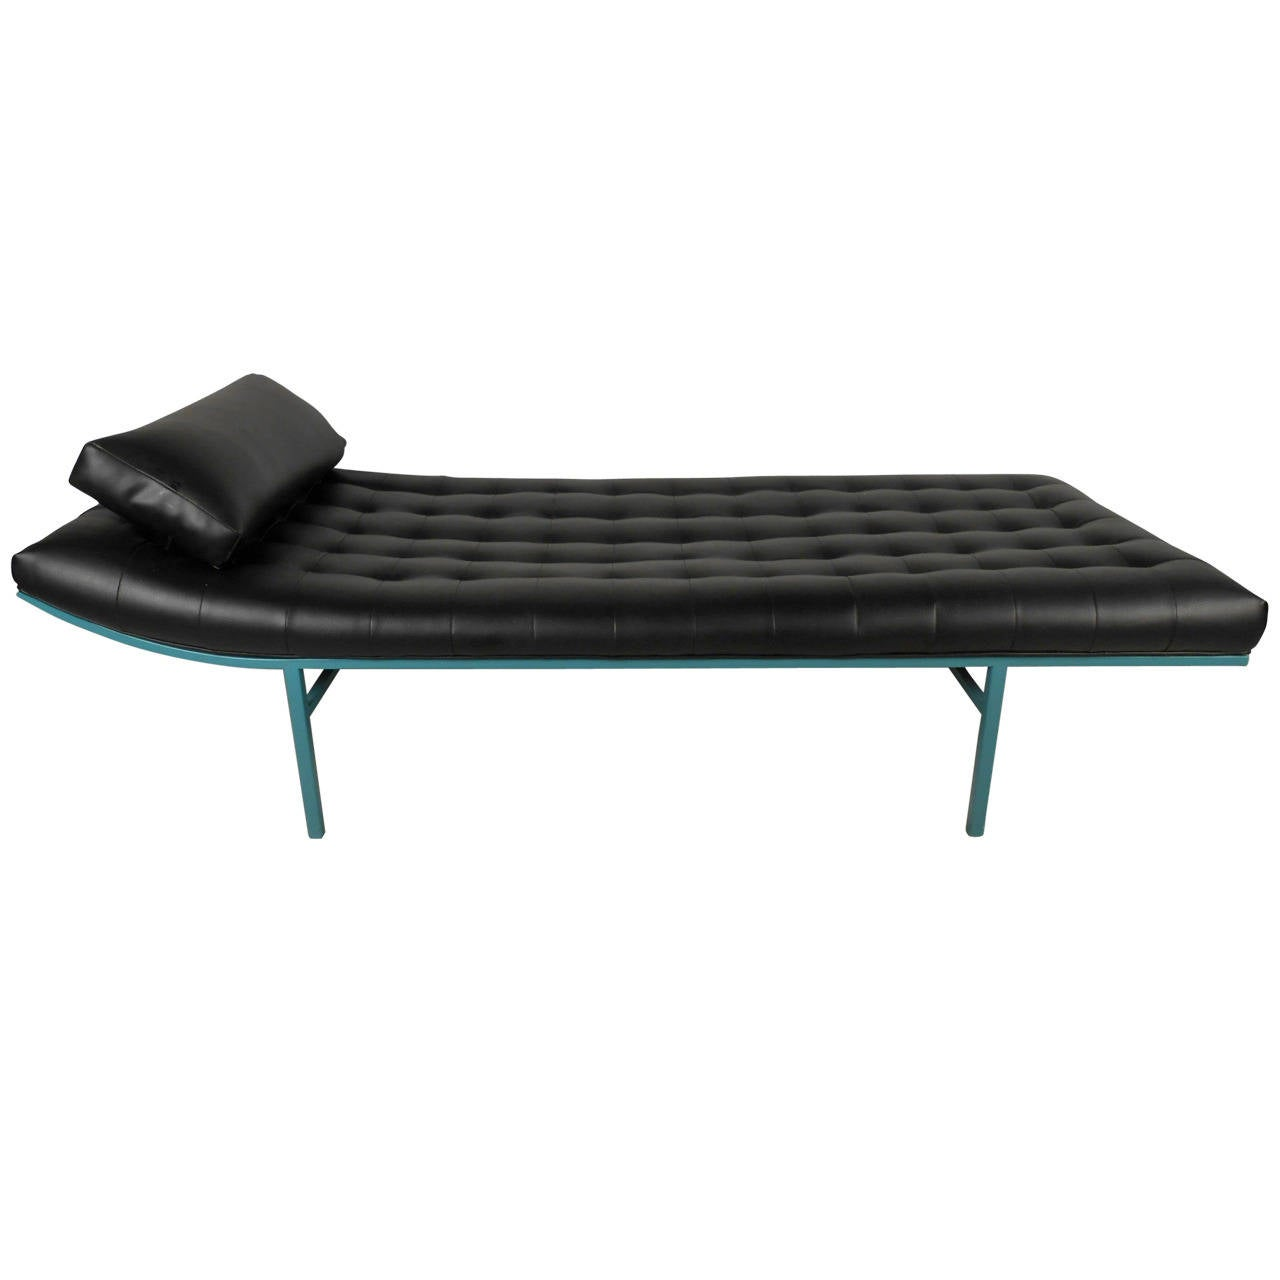 Modern chaise longue for sale at 1stdibs for Chaise contemporary